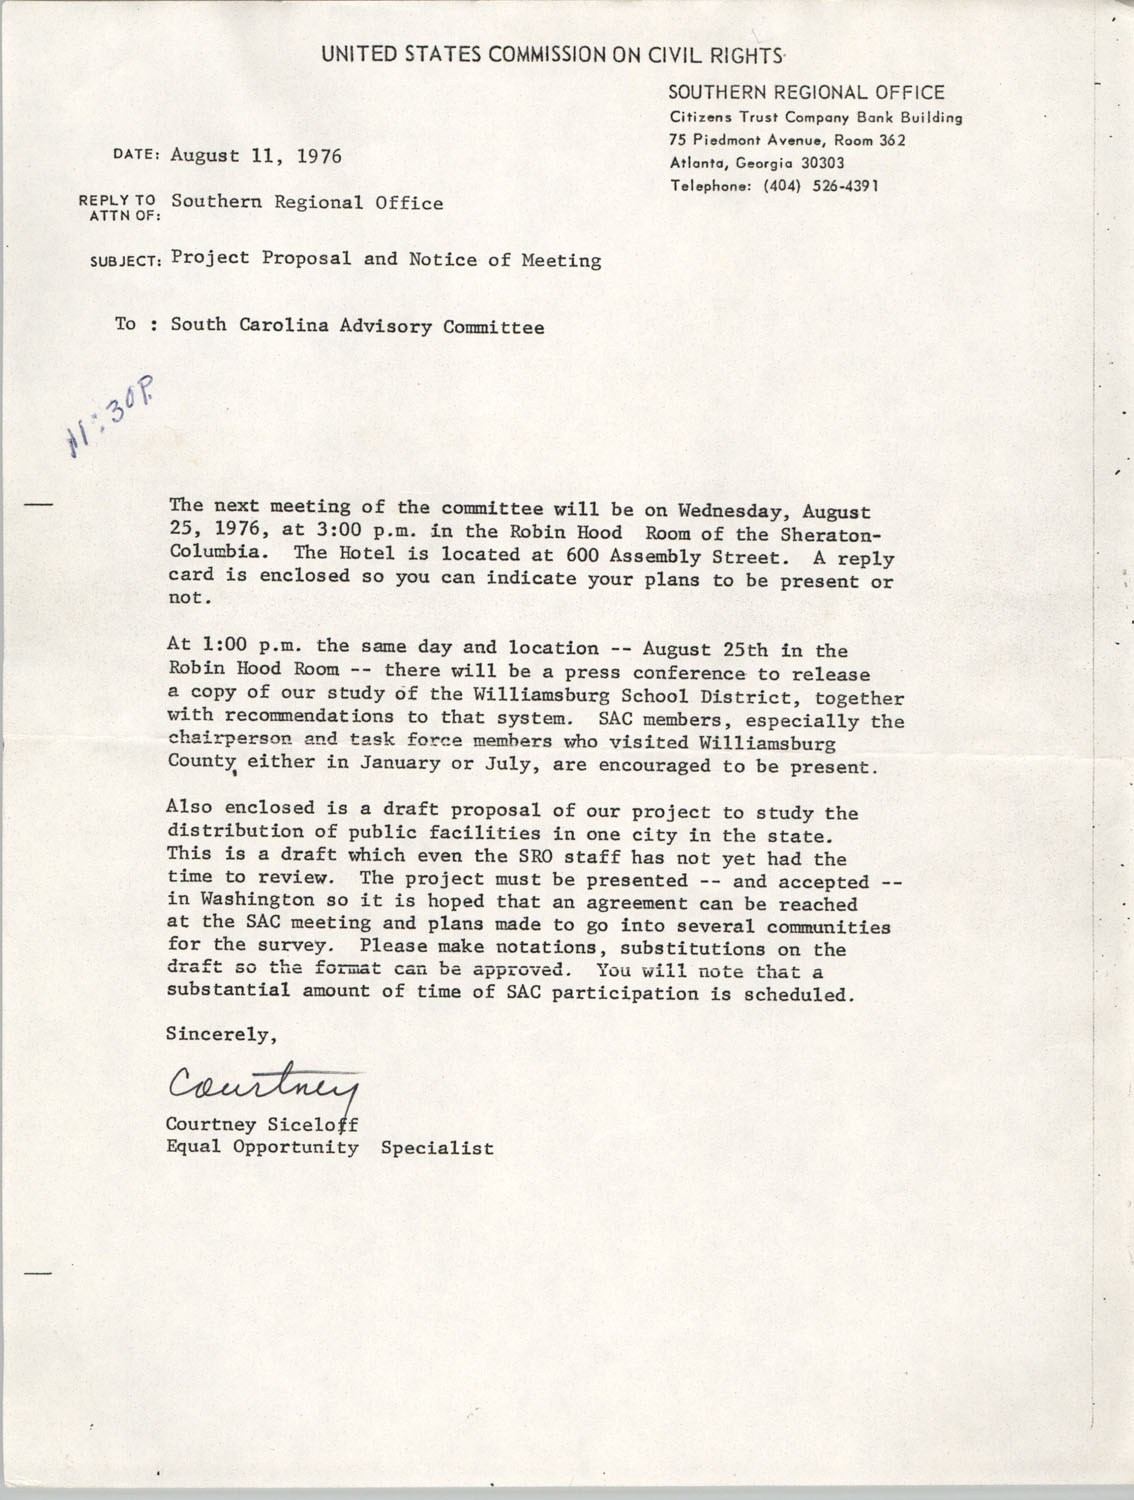 Racial Discriminatory Allocation of Municipal Facilities and Services in South Carolina, August 11, 1976